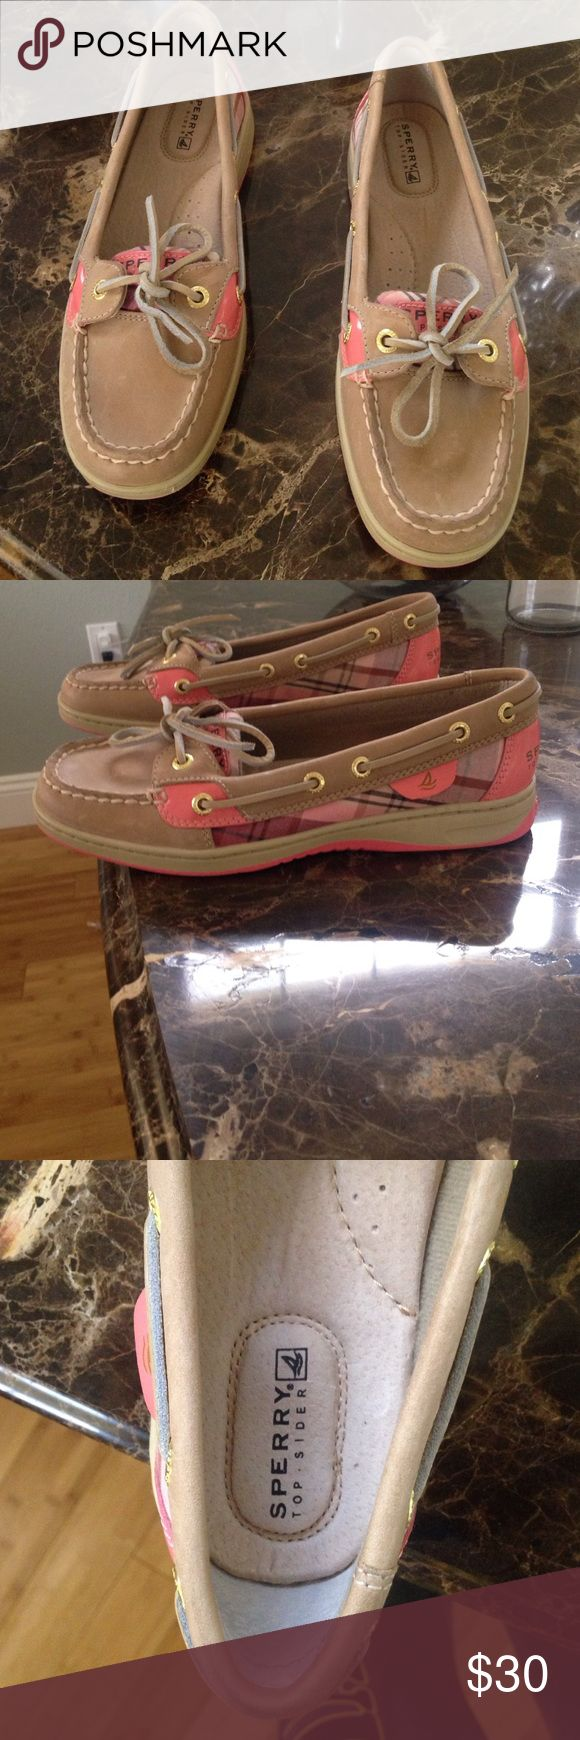 Sperry top sider loafers Pink and brown sperry top sider loafers. Size 6. Impulse buy. Never worn Sperry Top-Sider Shoes Flats & Loafers